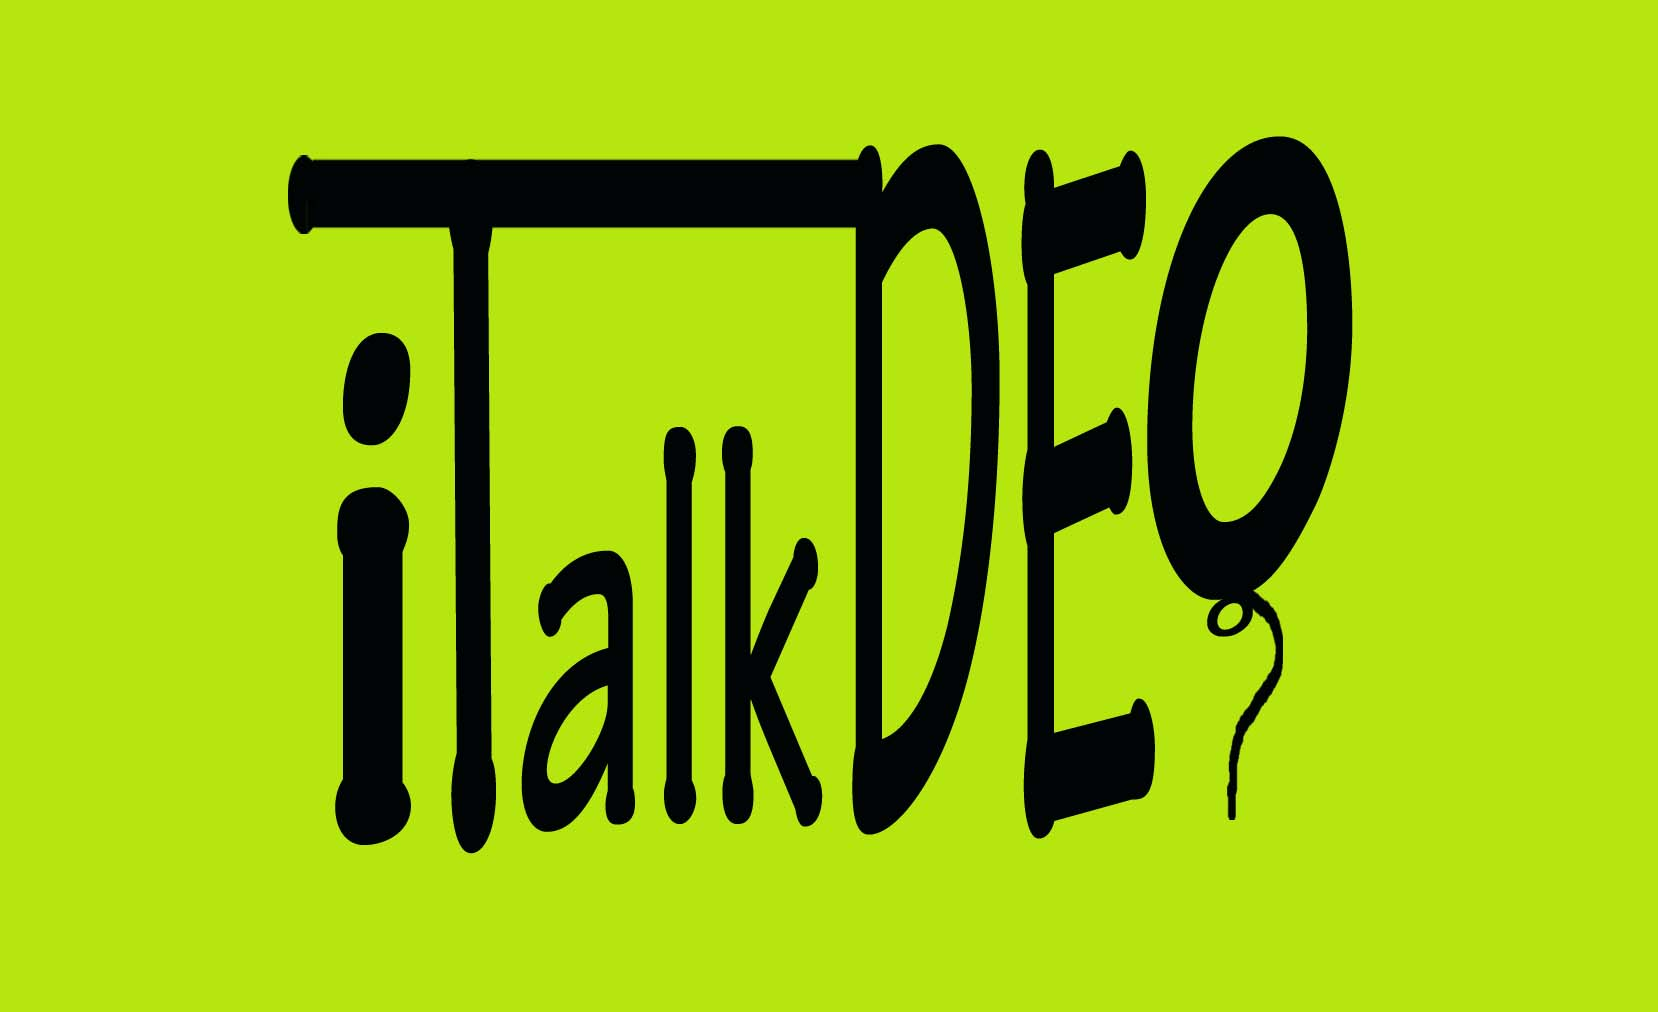 ITalkDEO place for Toastmasters, speakers and beginner to improve their public speaking